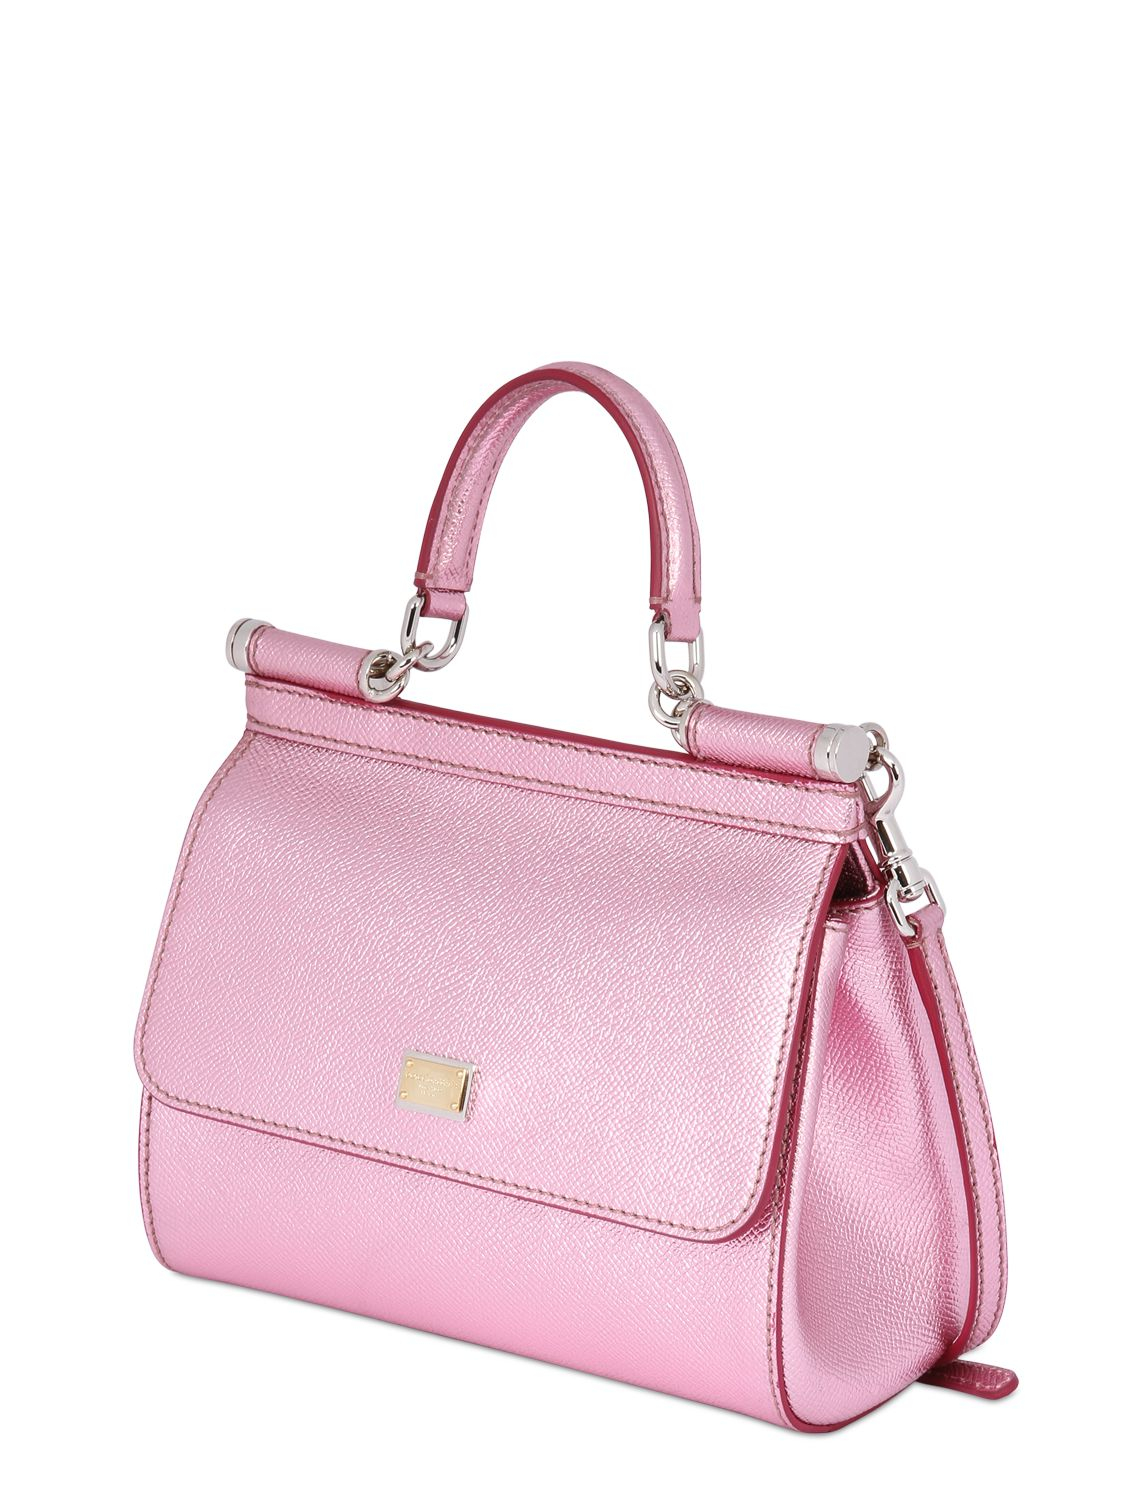 8c631e224be7 Lyst - Dolce   Gabbana Small Sicily Lamé Dauphine Leather Bag in Pink